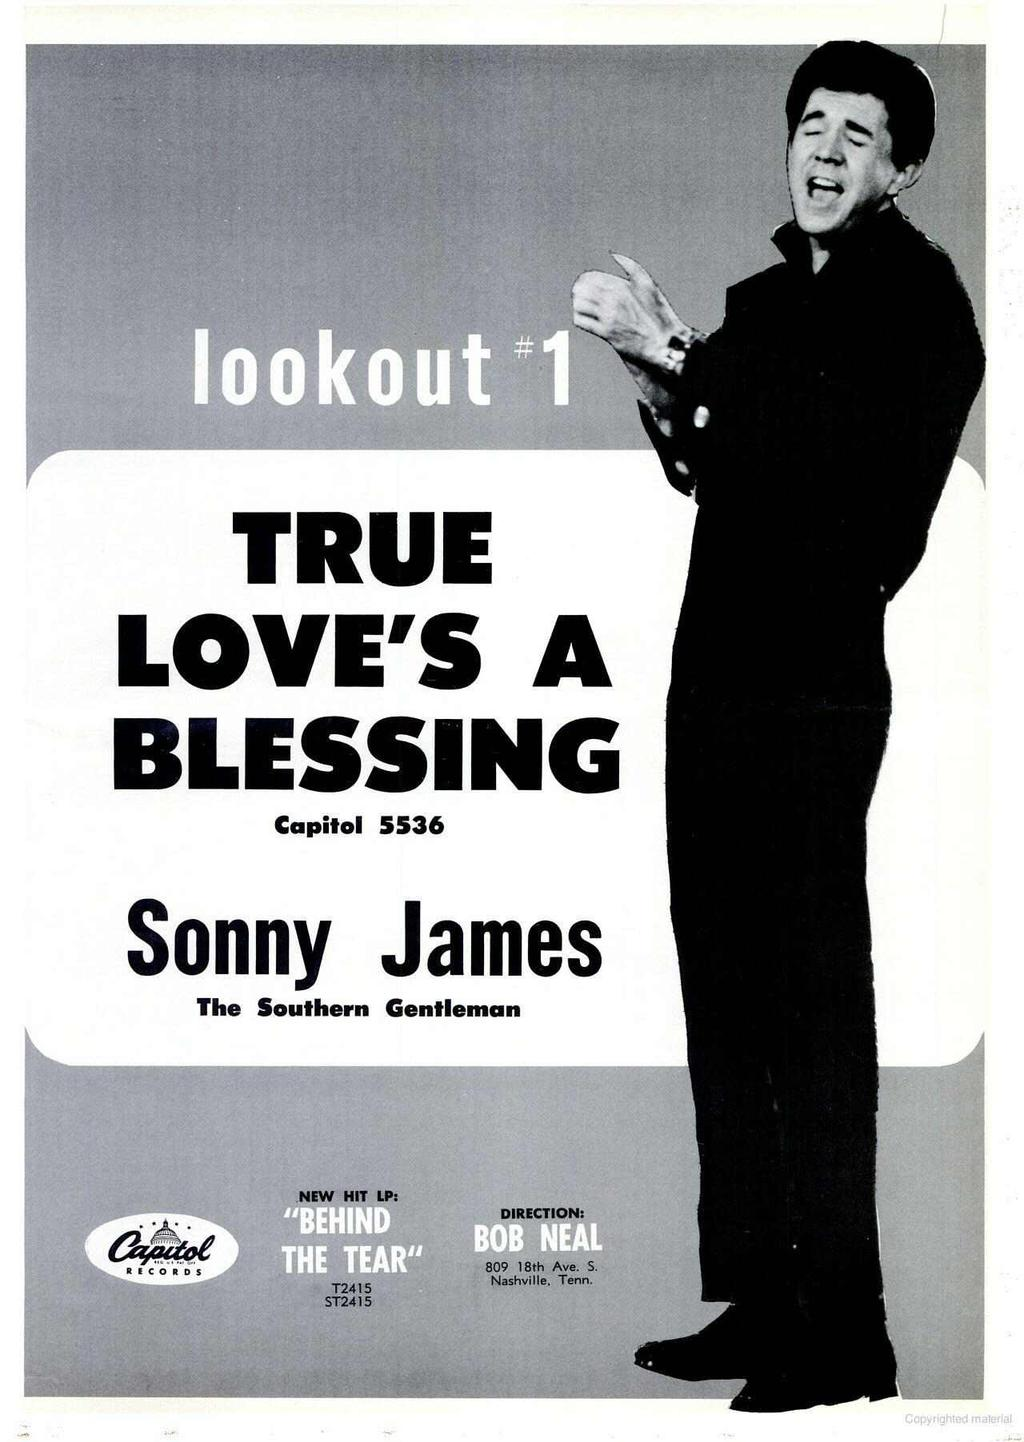 TRUE LOVE'S A BLESSING Capitol 5536 S onn Y James The Southern Gentleman